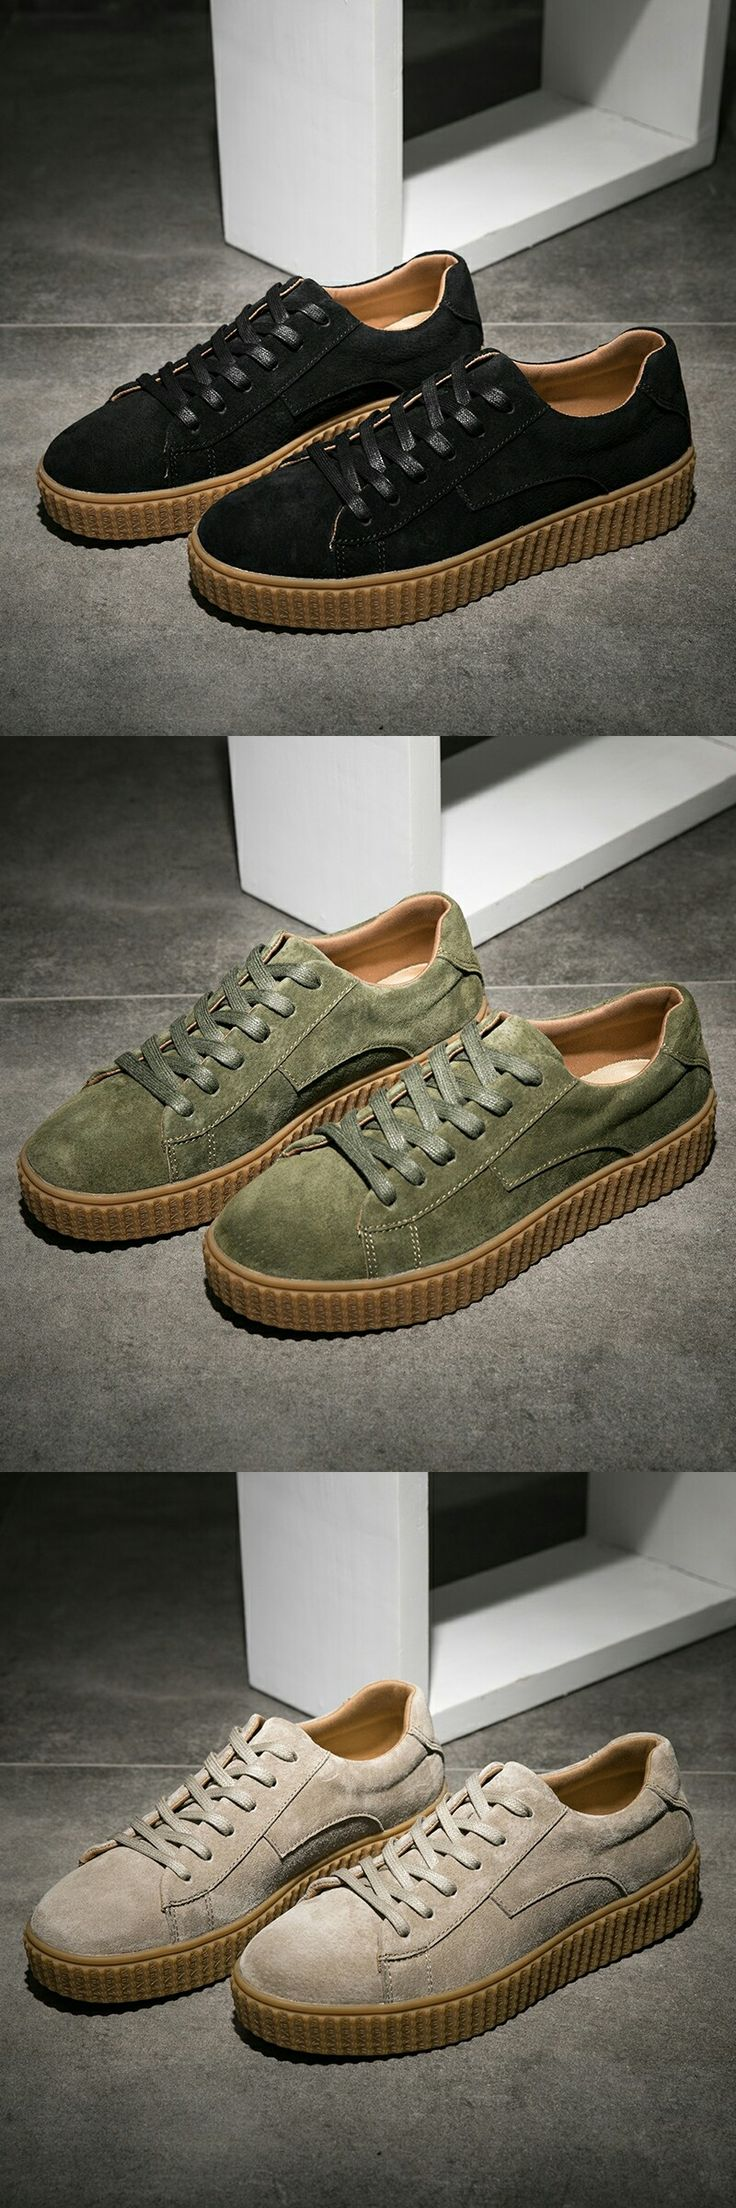 93 Best Awesome Shoes Images On Pinterest Gents Mens Tendencies Sepatu Formal Reissue Dockside Tan 44 Click To Buy Prelesty Classic Men Casual Creepers Luxury Brand Vintage